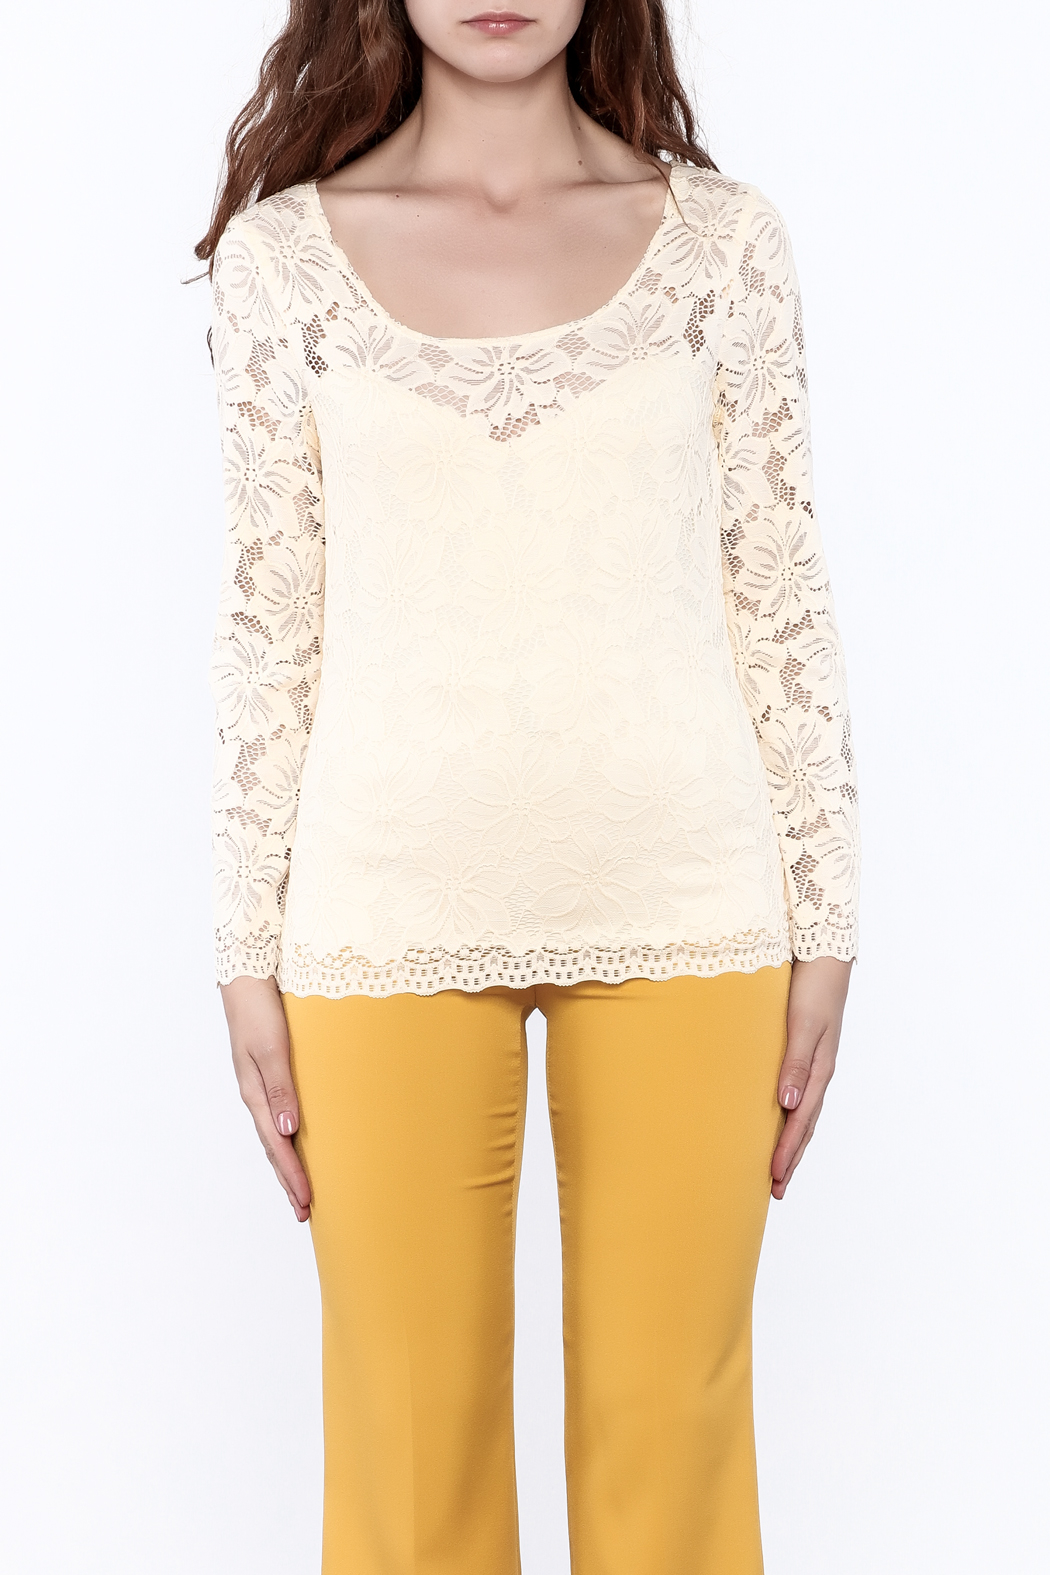 Sharon Max Ivory Lace Top - Side Cropped Image